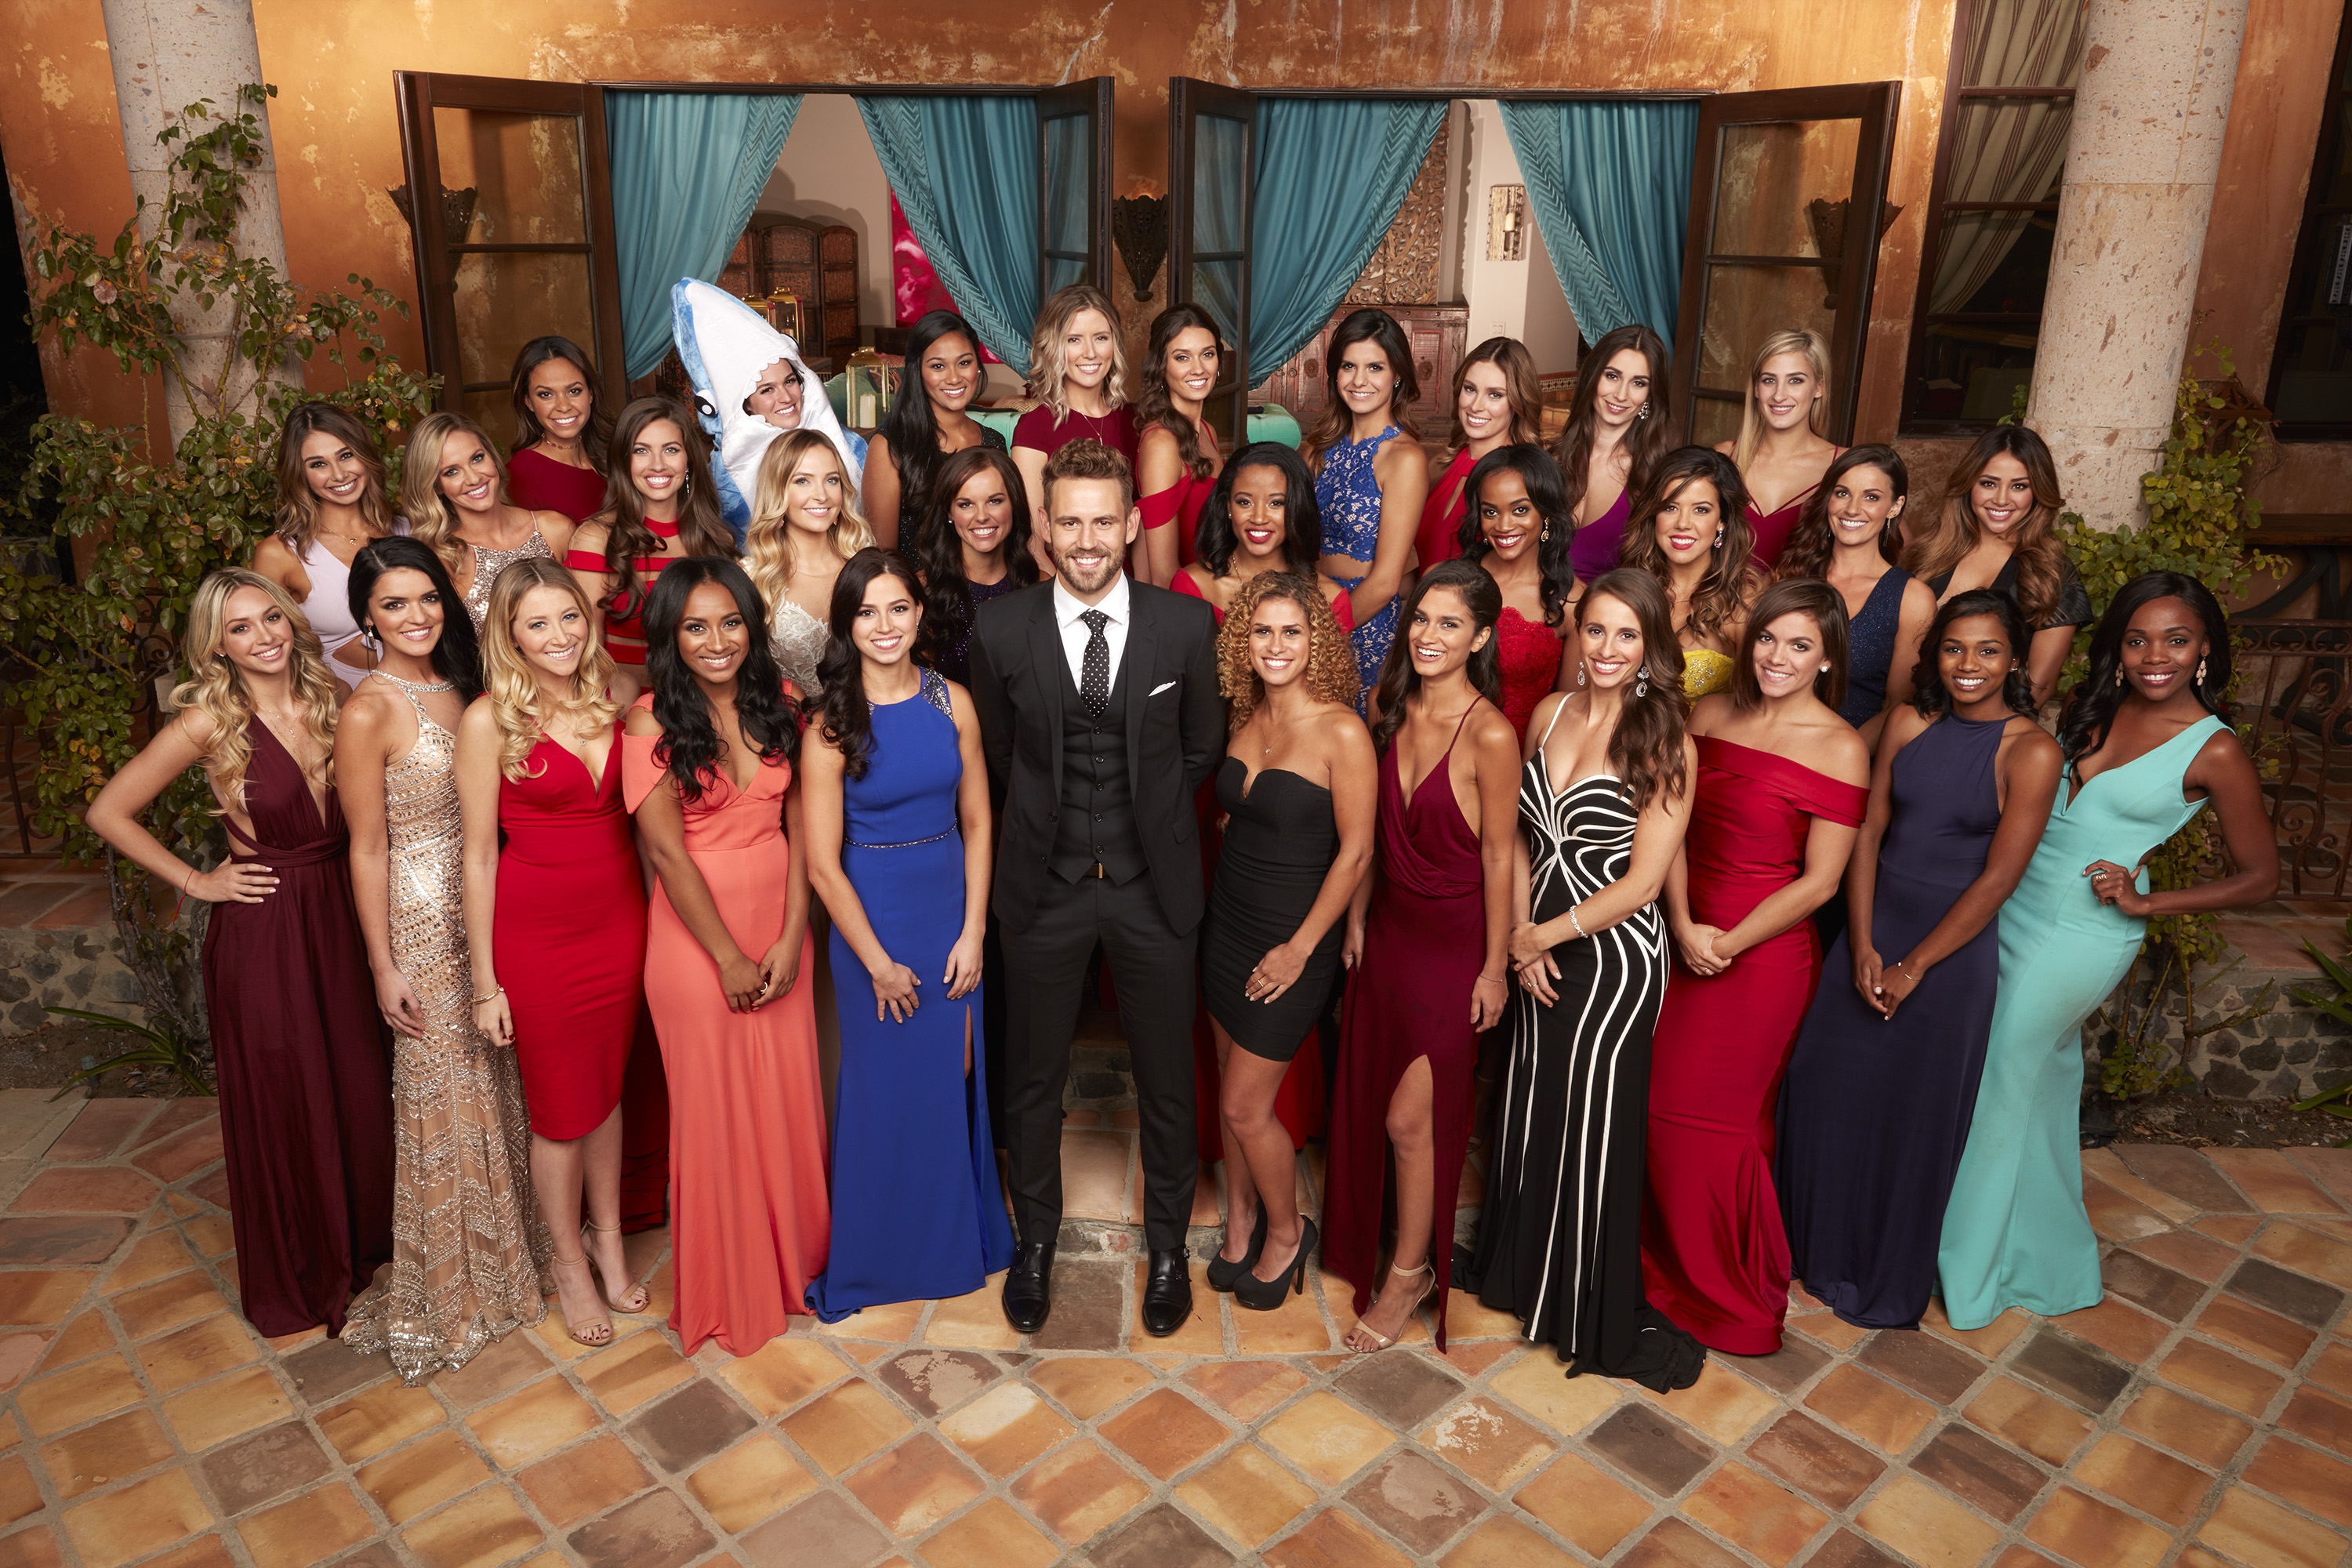 picture relating to Bachelor Bracket Printable identified as Receive Your Bachelor Bracket Just before the Premiere Already! - Daily life